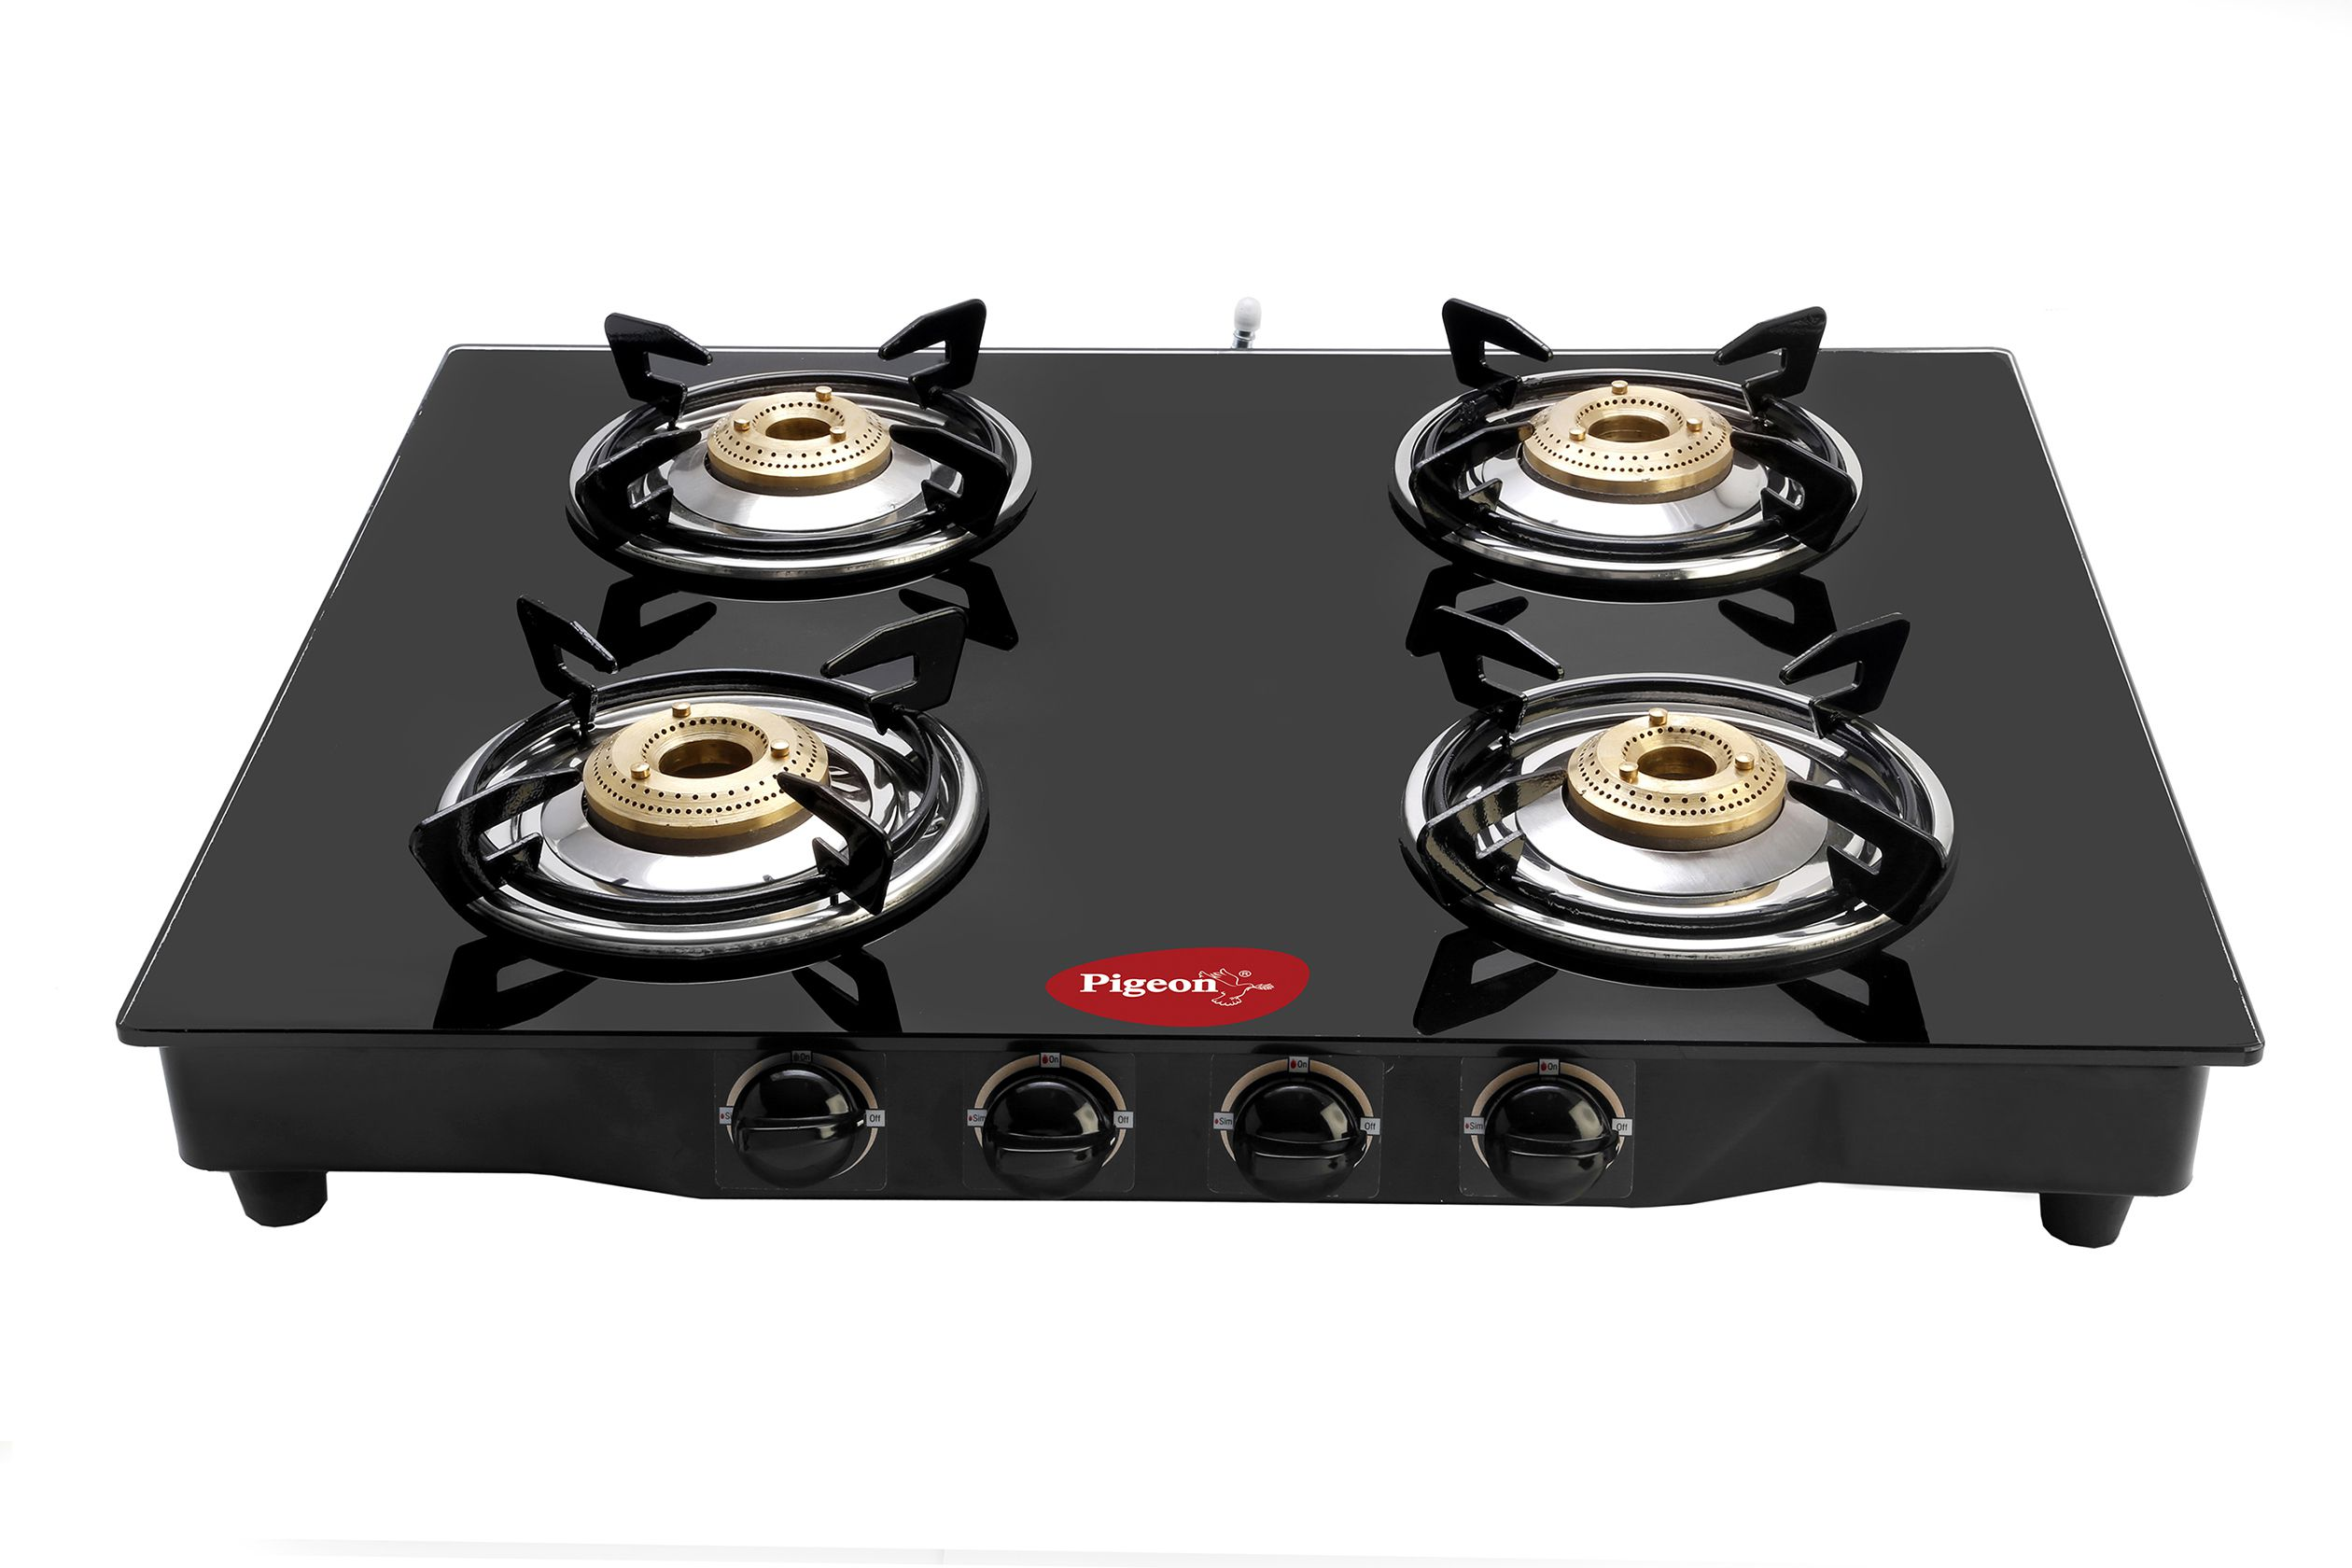 pigeon blackline 4 burner manual gas stove price in india buy pigeon blackline 4 burner manual. Black Bedroom Furniture Sets. Home Design Ideas